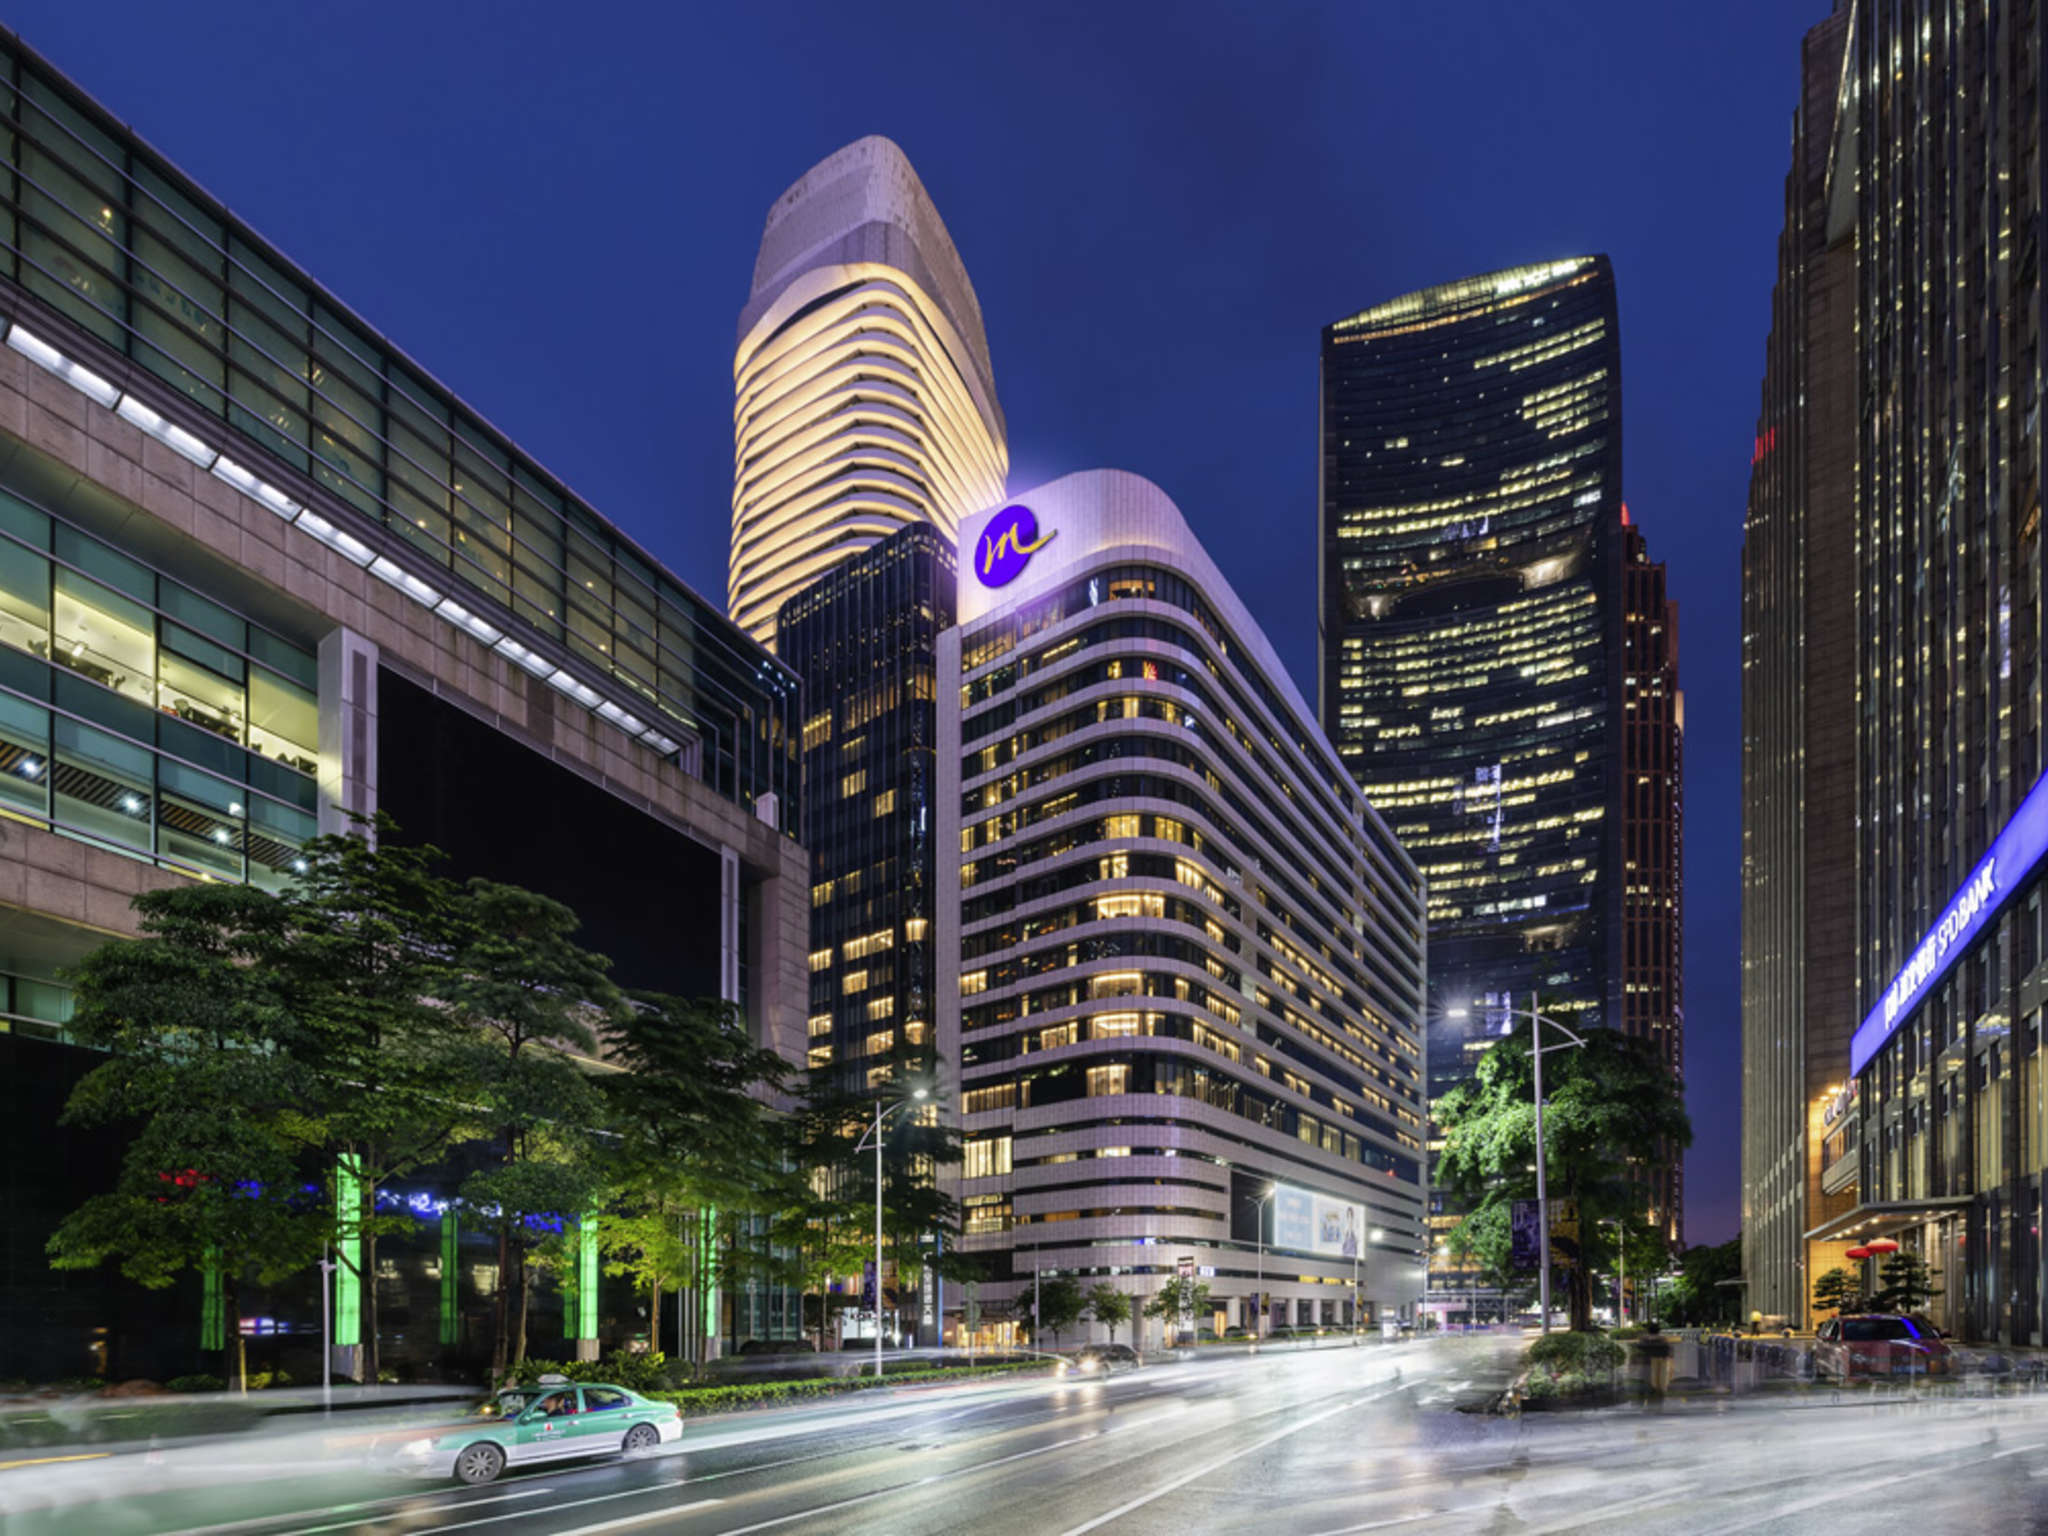 فندق - Grand Mercure Guangzhou Zhujiang (Opening January 2019)